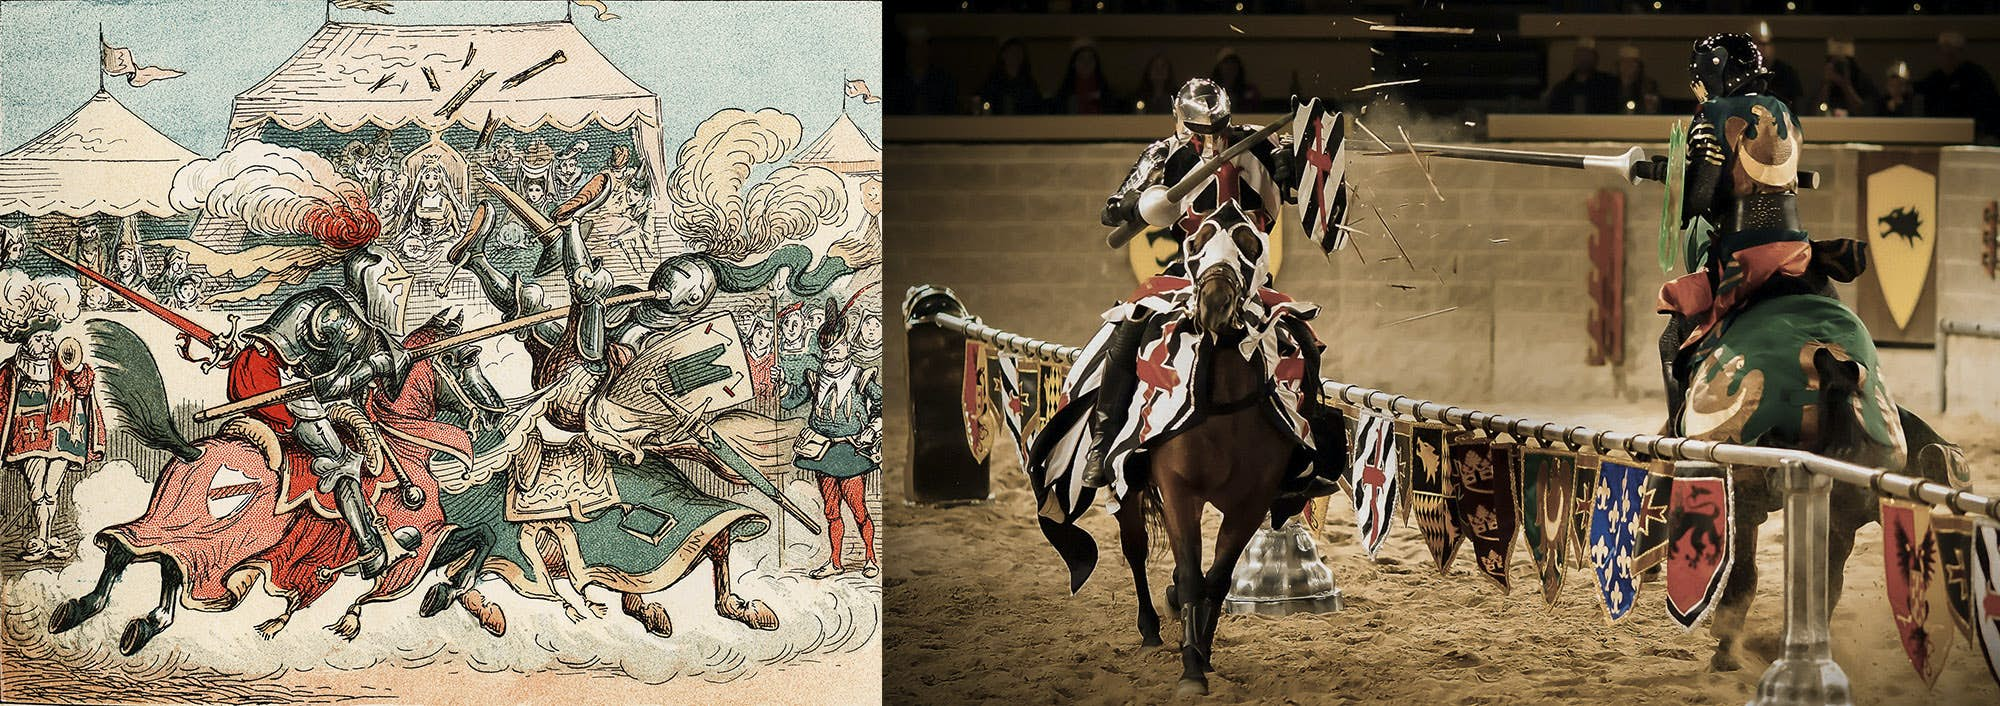 On the left, there is an illustration from Medieval times of Knights in the arena. On the right, there is a photograph from a Medieval Times Live Show, showing the accuracy of Medieval Times Shows, and actual events.